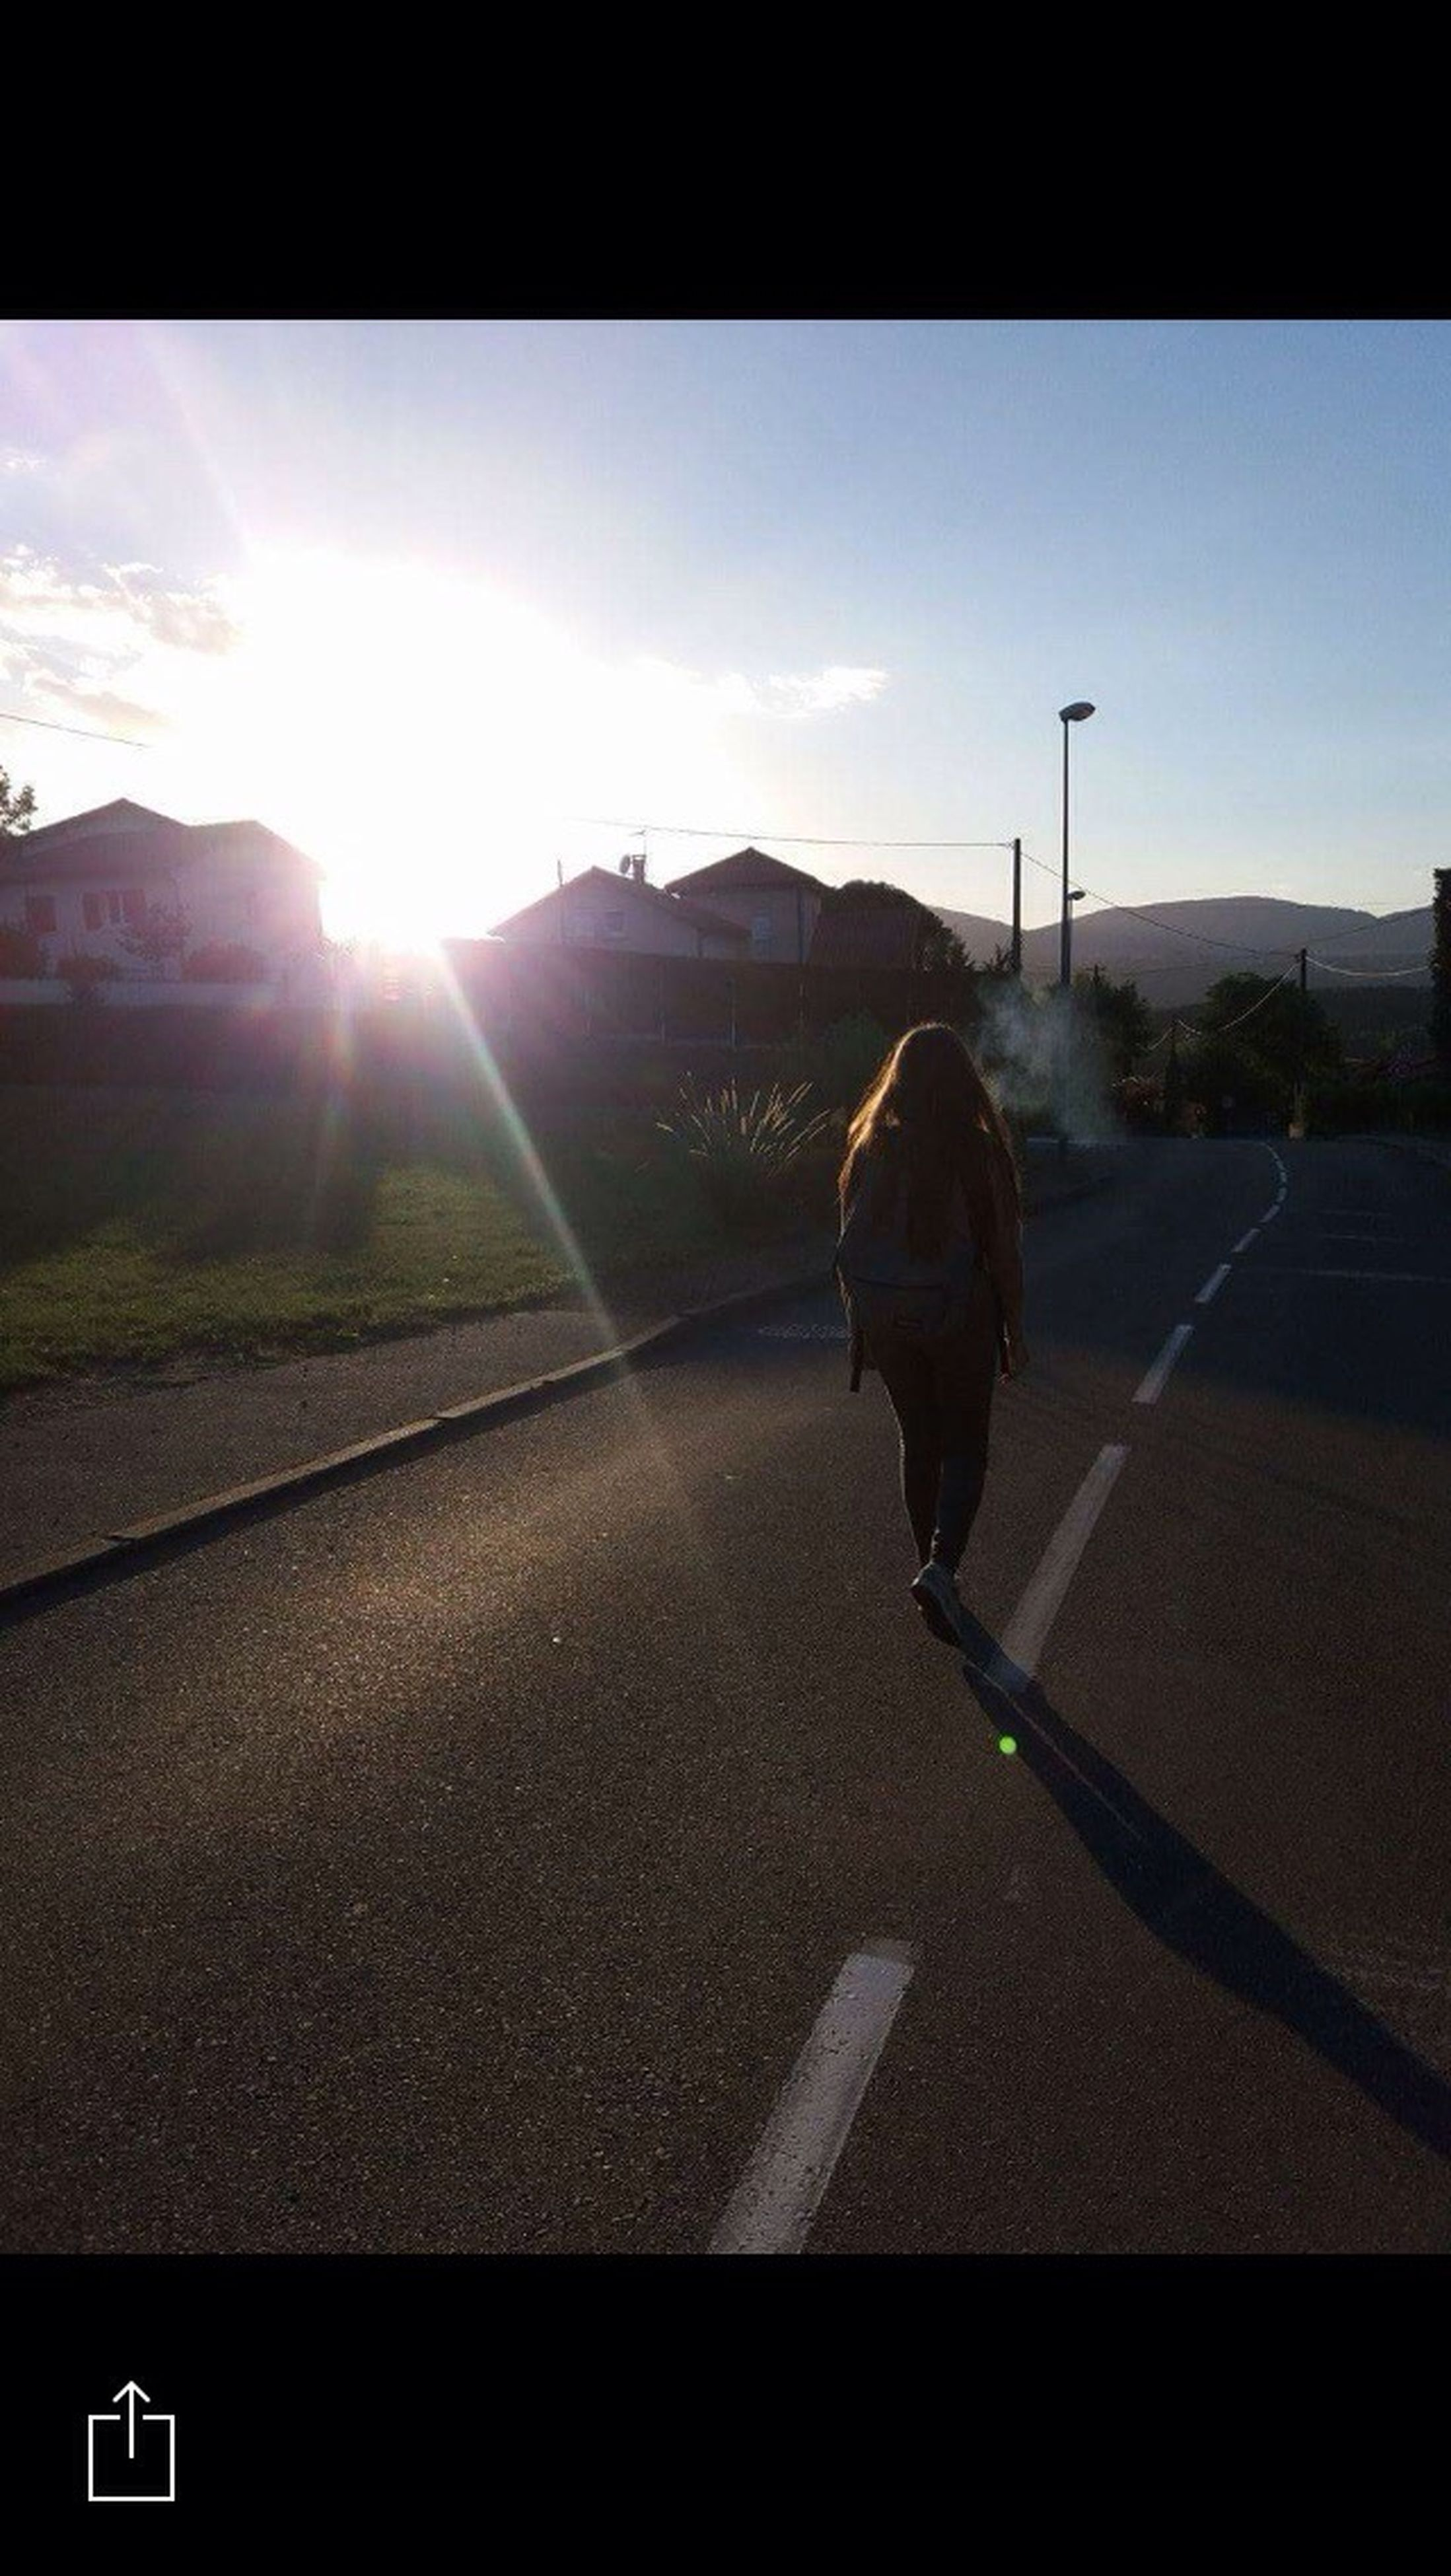 transportation, road, road marking, sunbeam, one animal, mammal, clear sky, lens flare, selective focus, the way forward, day, sun, domestic animals, cloud, countryside, sky, outdoors, mountain, tranquil scene, solitude, surface level